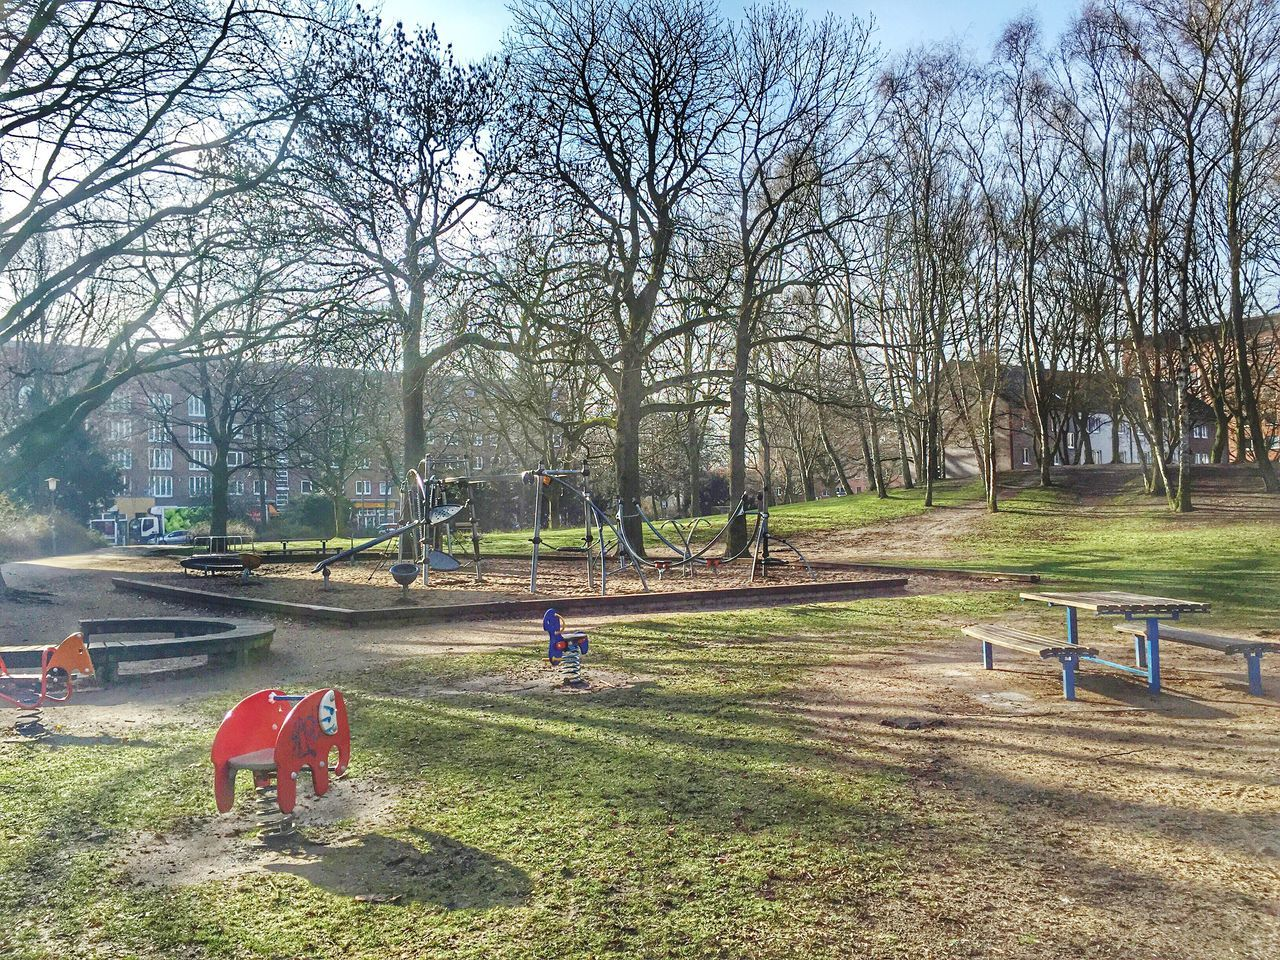 bare tree, tree, playground, real people, childhood, park - man made space, playing, outdoors, girls, lifestyles, day, togetherness, growth, child, nature, men, grass, people, sky, adult